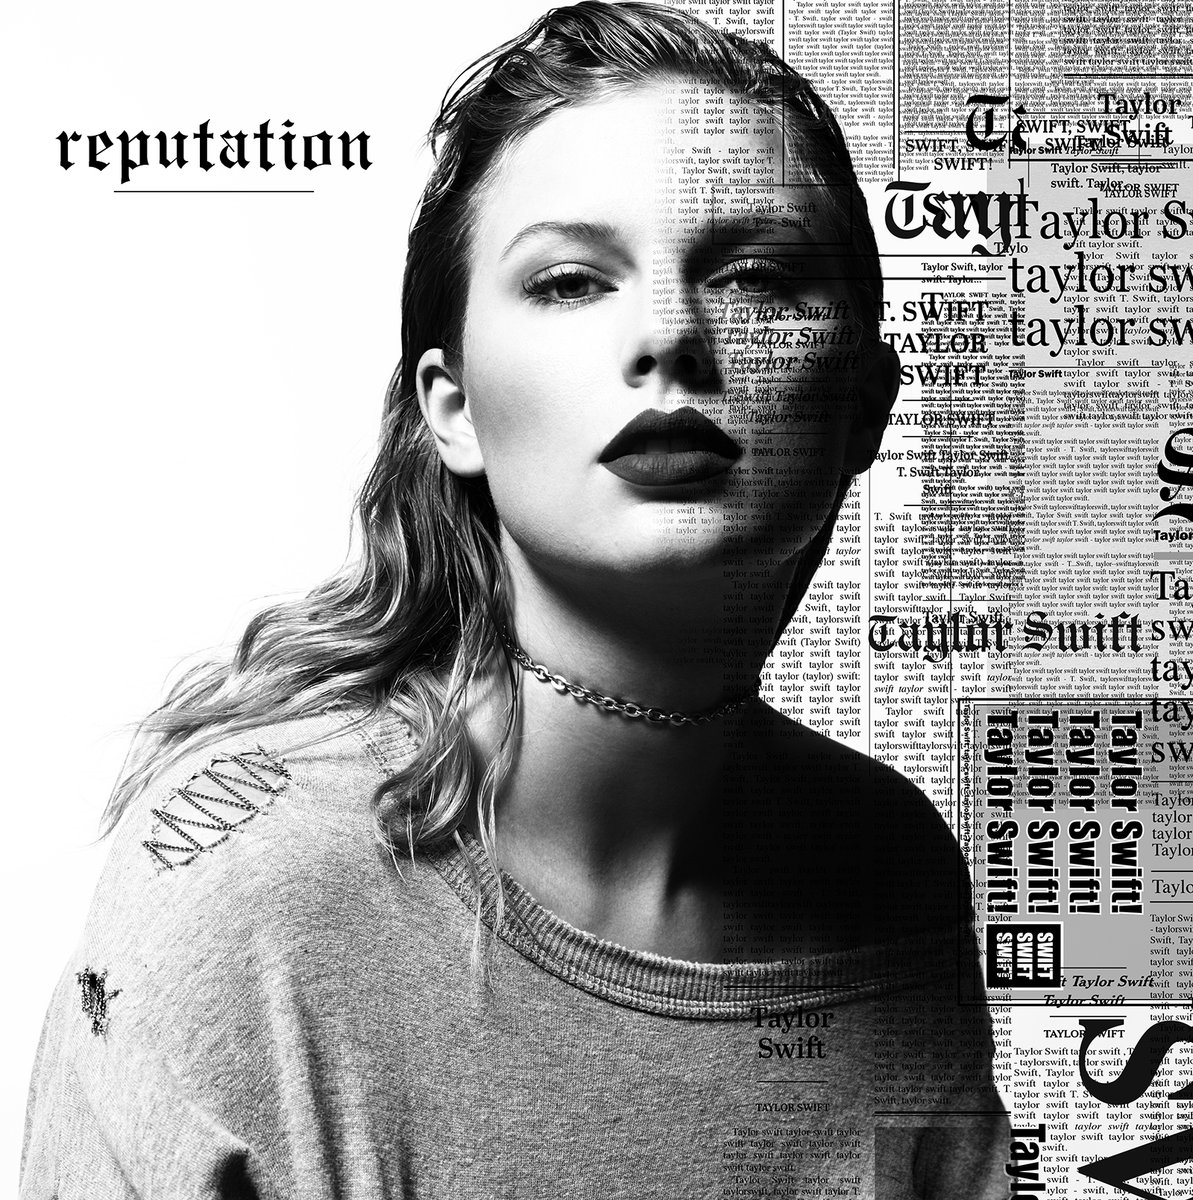 Taylor Swift-Reputation